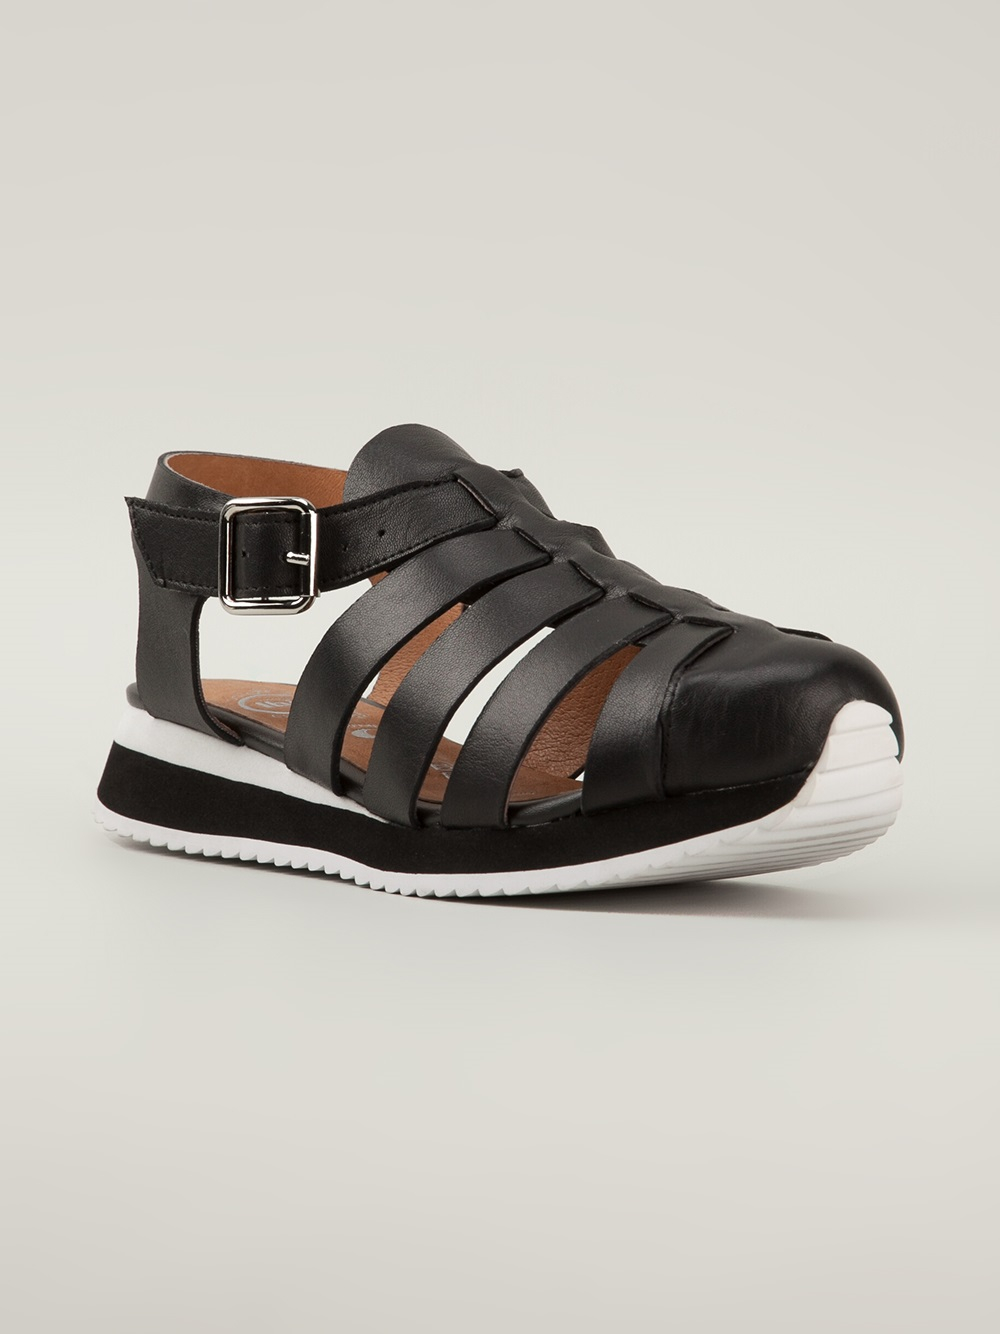 Lyst Jeffrey Campbell Boulet Sneakerstyle Sandals In Black